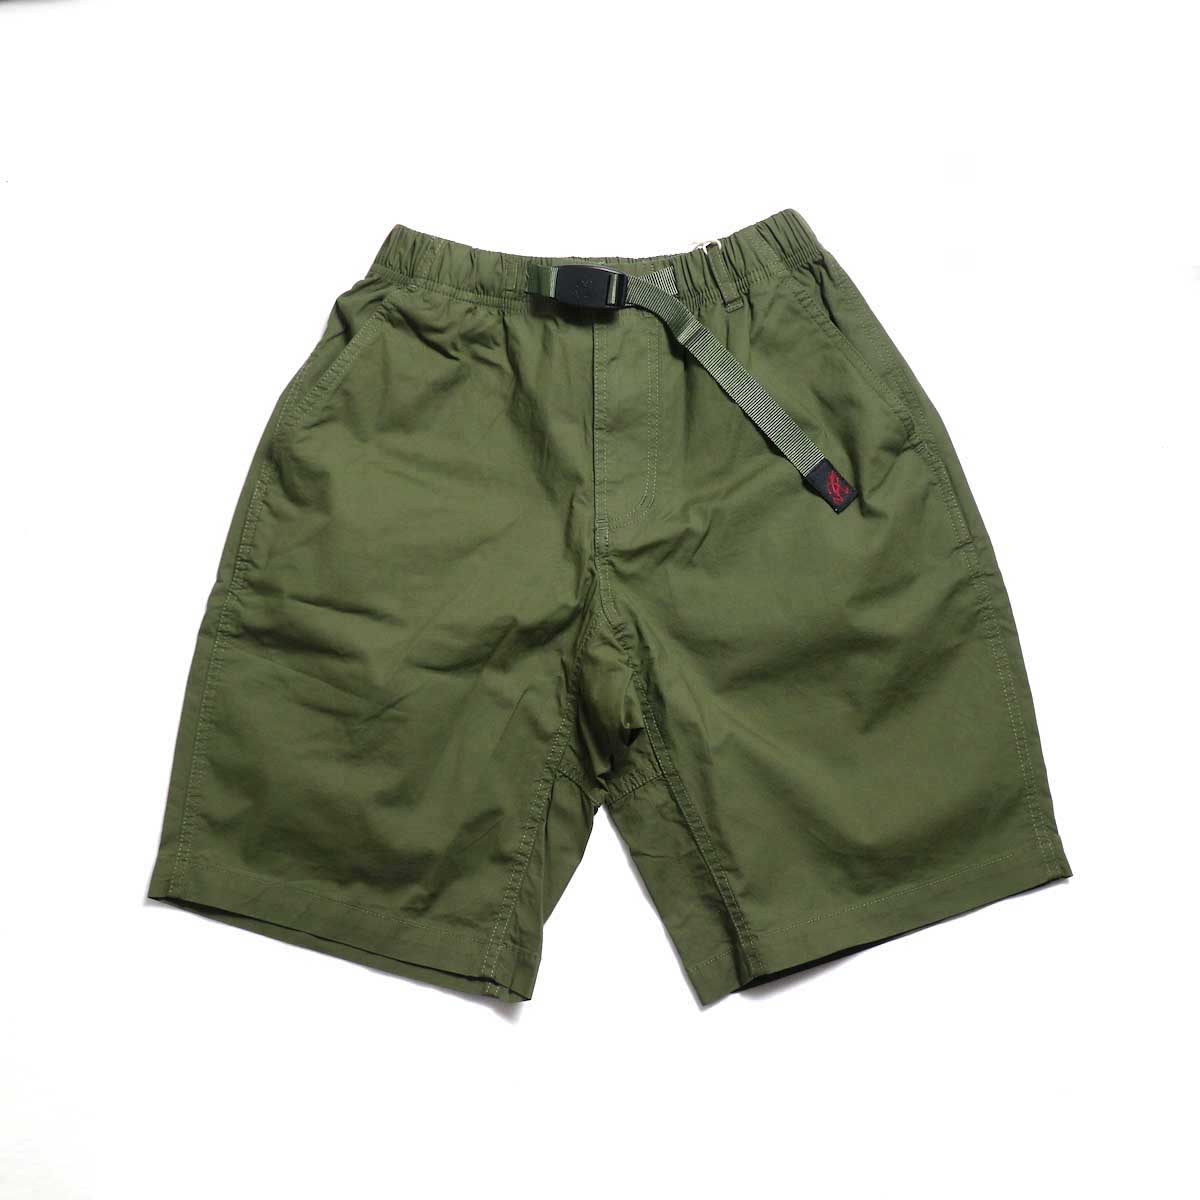 GRAMICCI / WEATHER ST-SHORTS -Olive